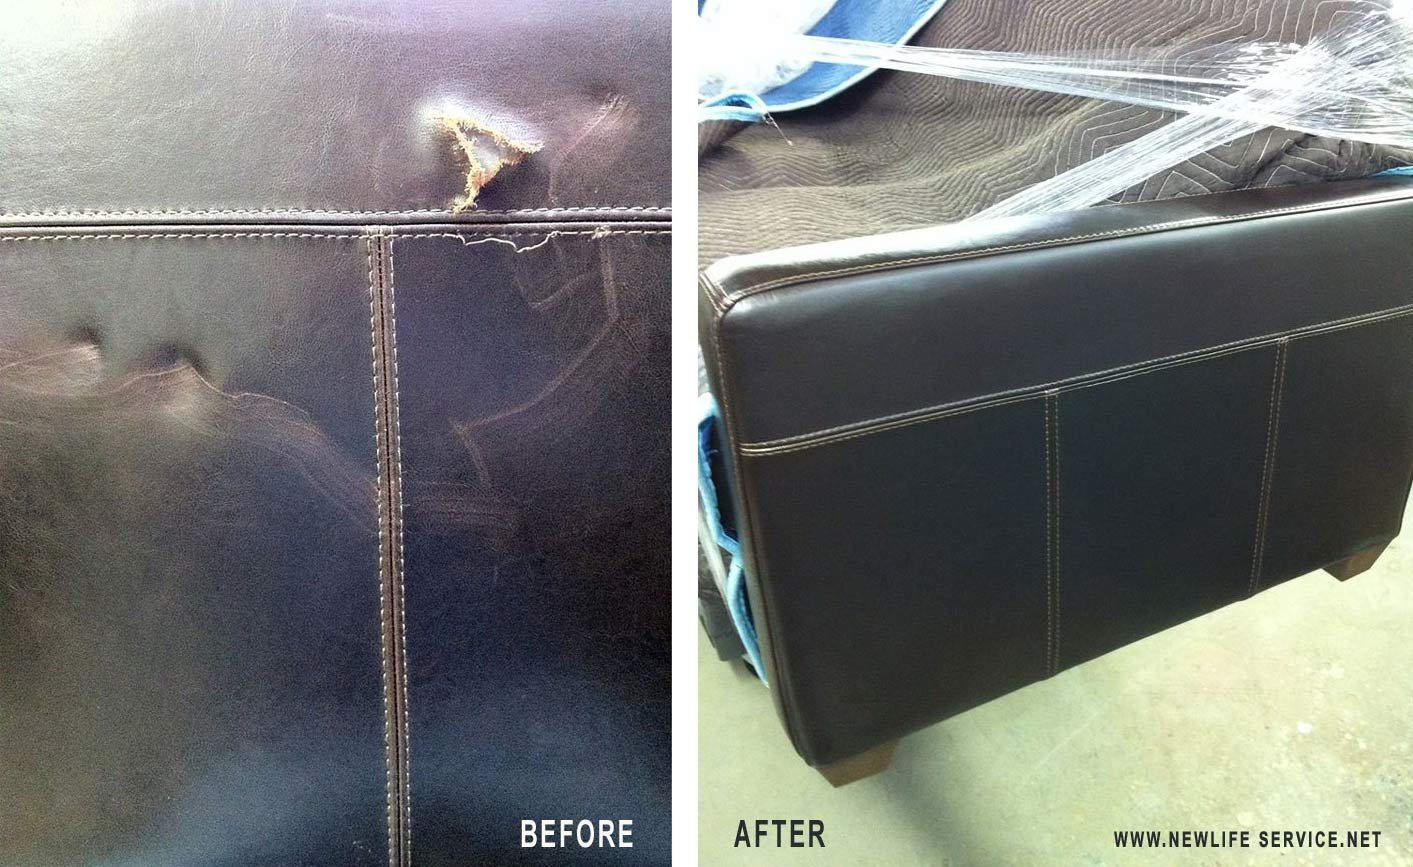 Before & After Photo Leather Couch Repair & Refinish by New Life Service Company of Dallas at www.newlifeservice.net